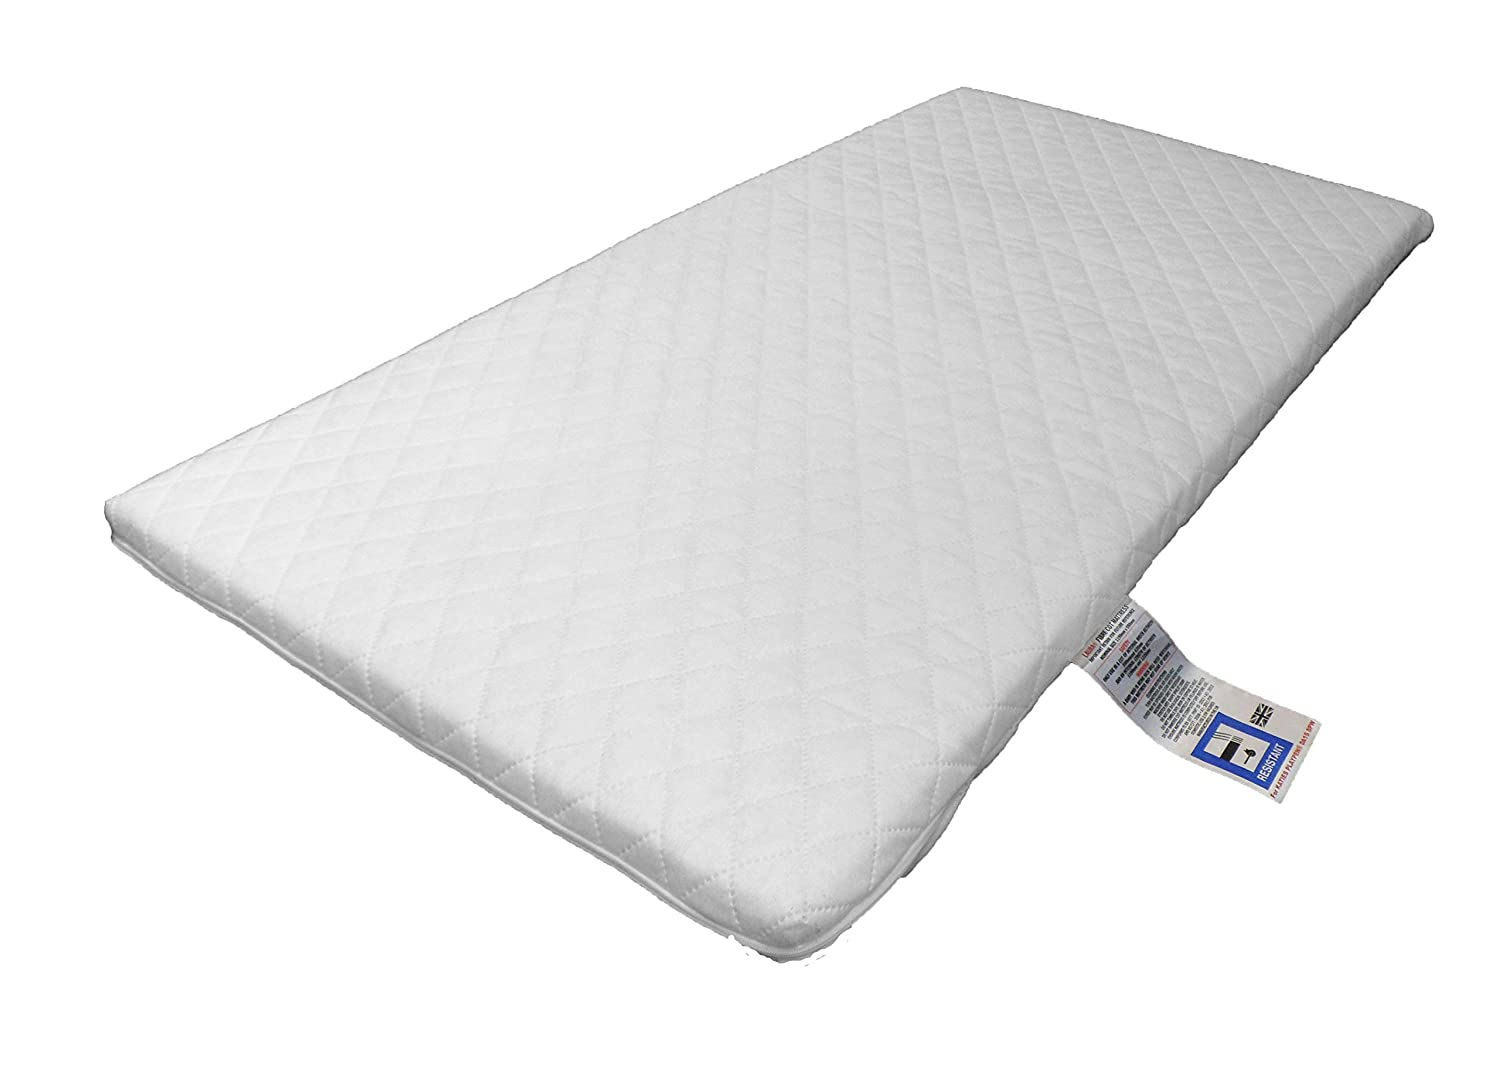 LAURA® Deluxe Hypo-Allergenic Eco Air Flow Quilted Dual Sided Travel Cot Mattress 119 x 59cm x 5cm Thick British Made